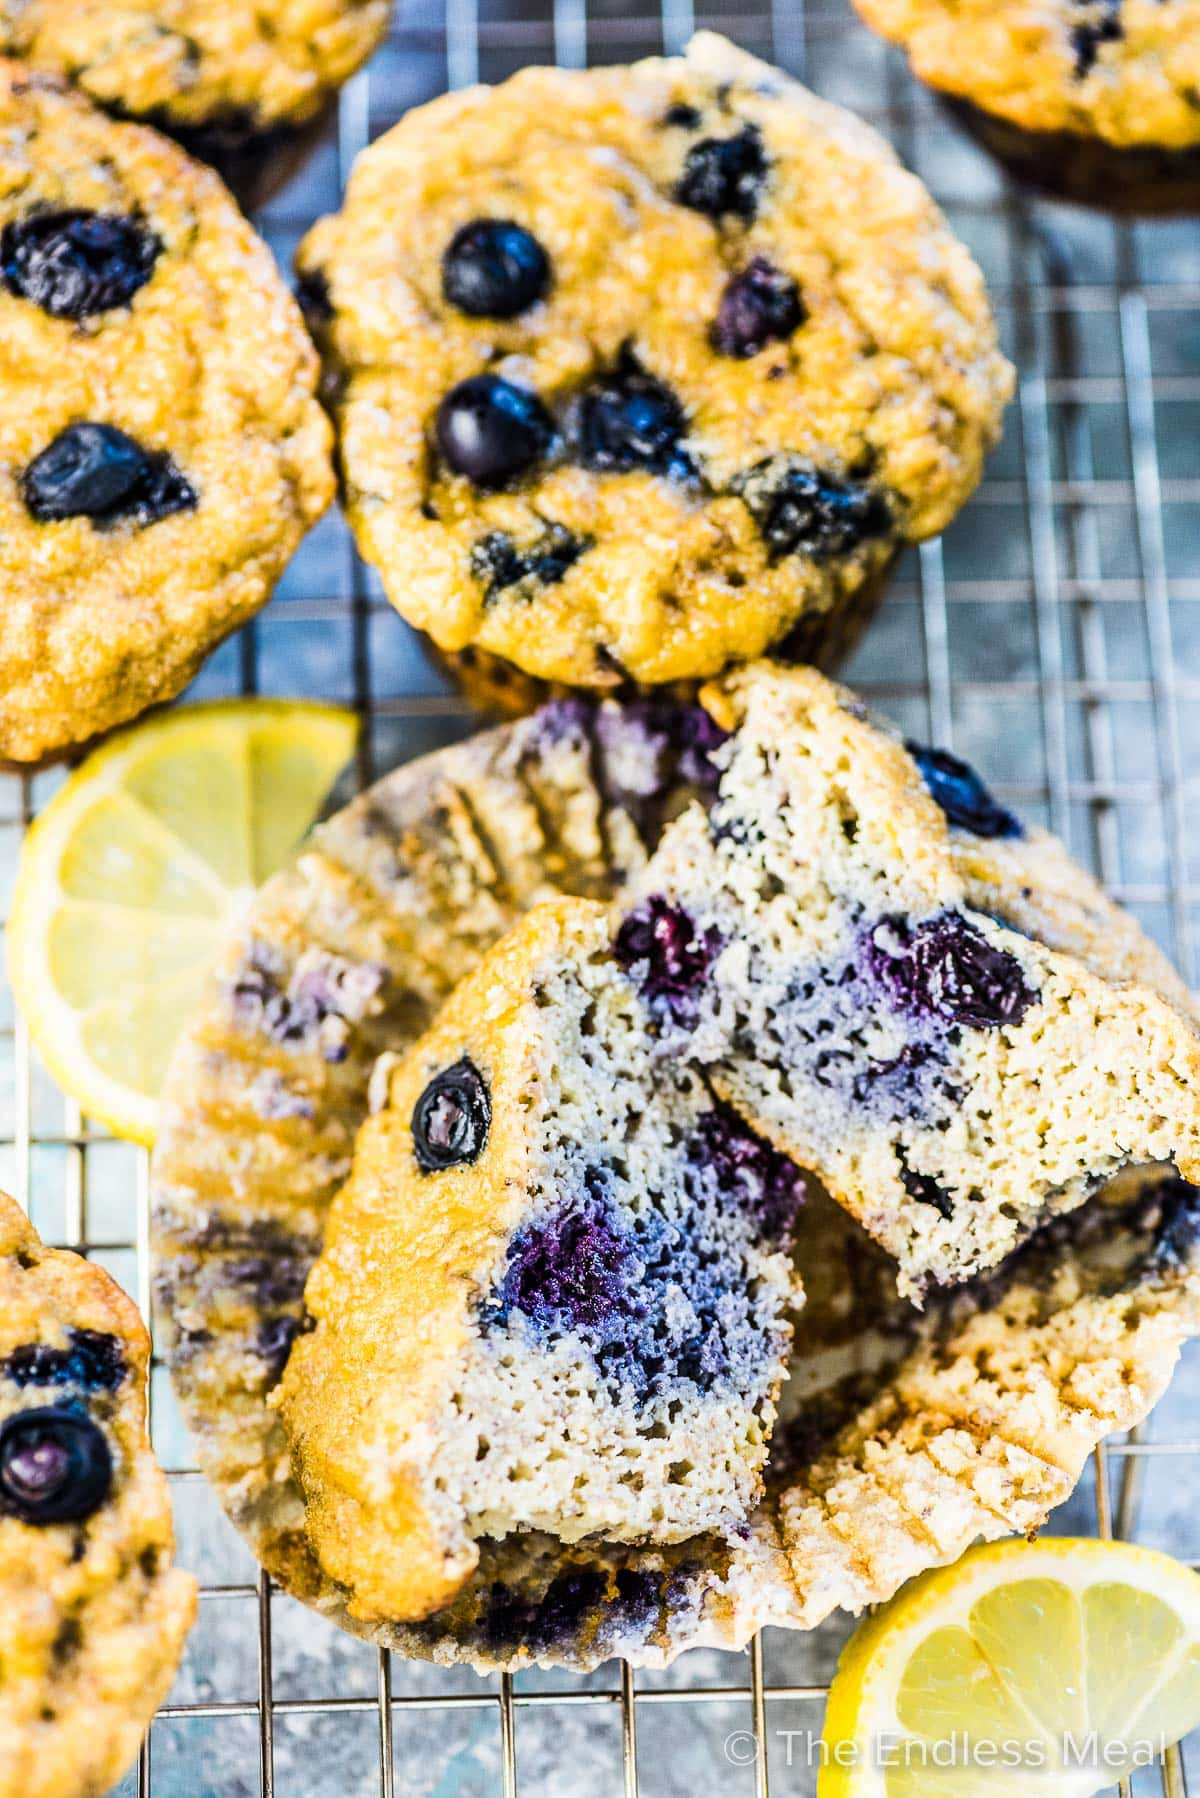 A paleo blueberry muffin cut in half with lots of fresh blueberries inside.